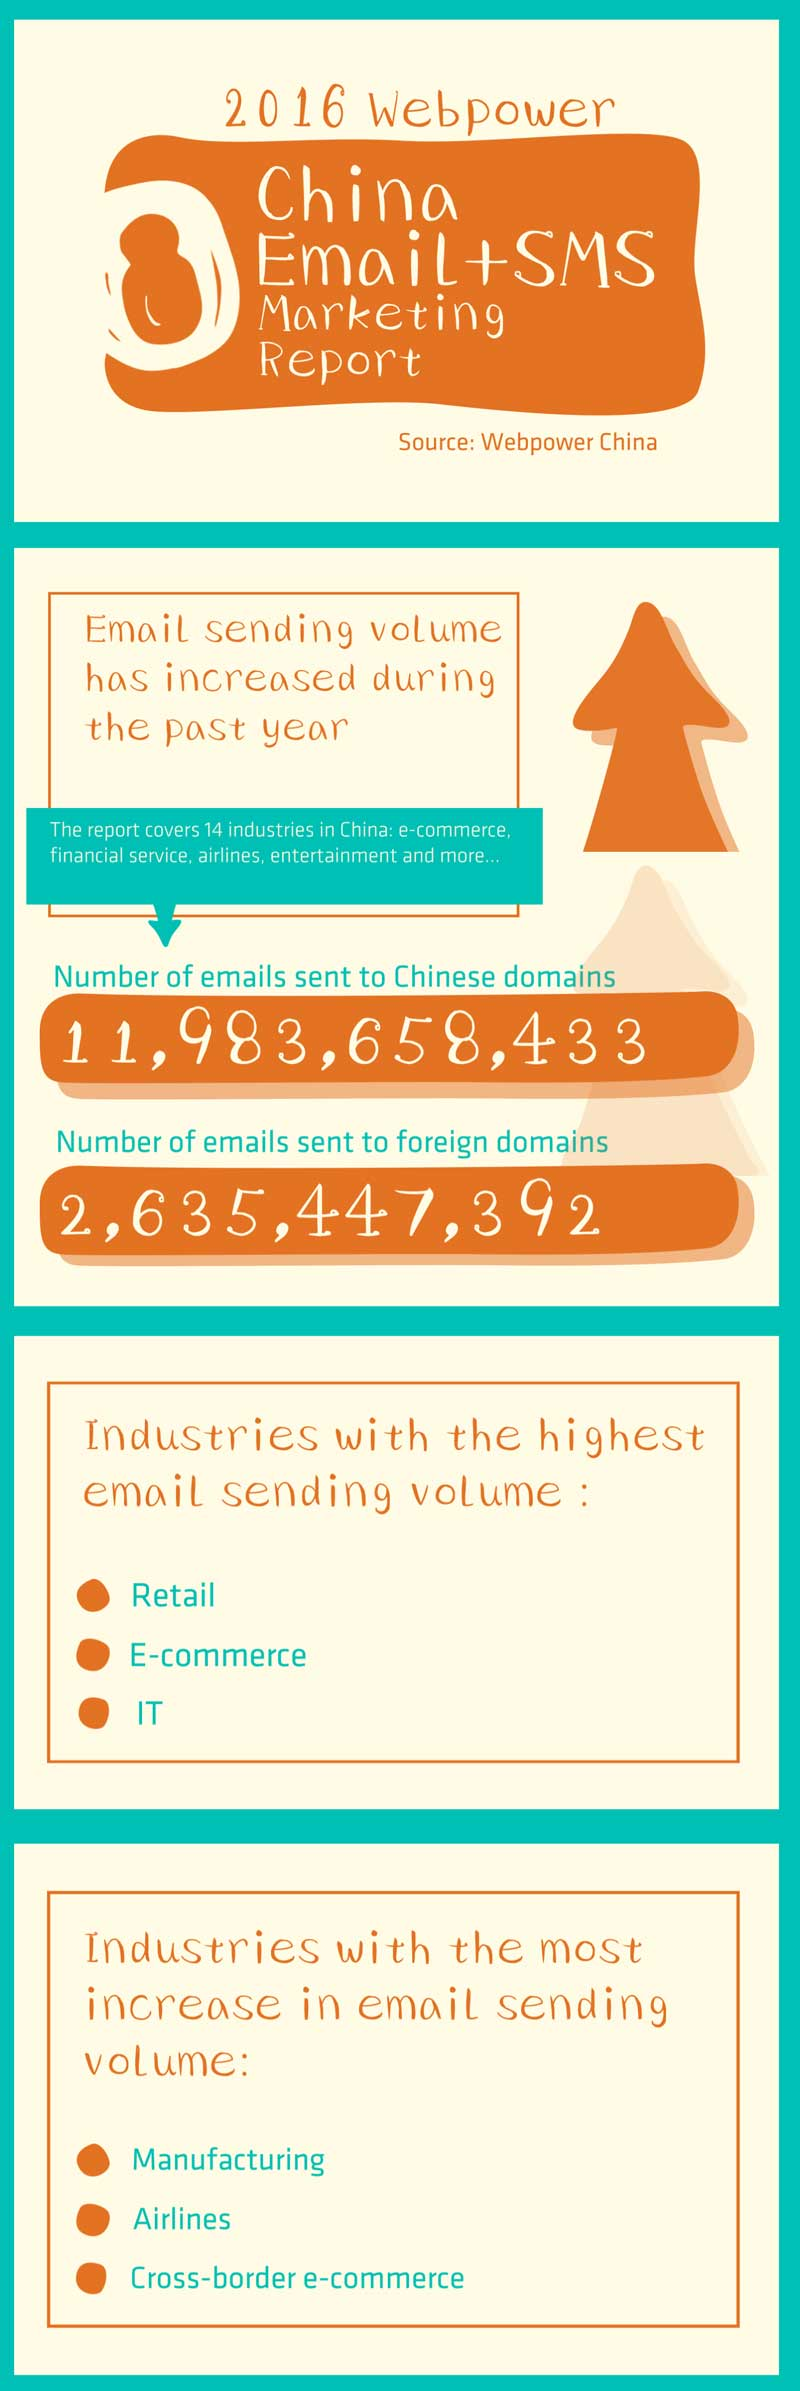 email and sms marketing in China